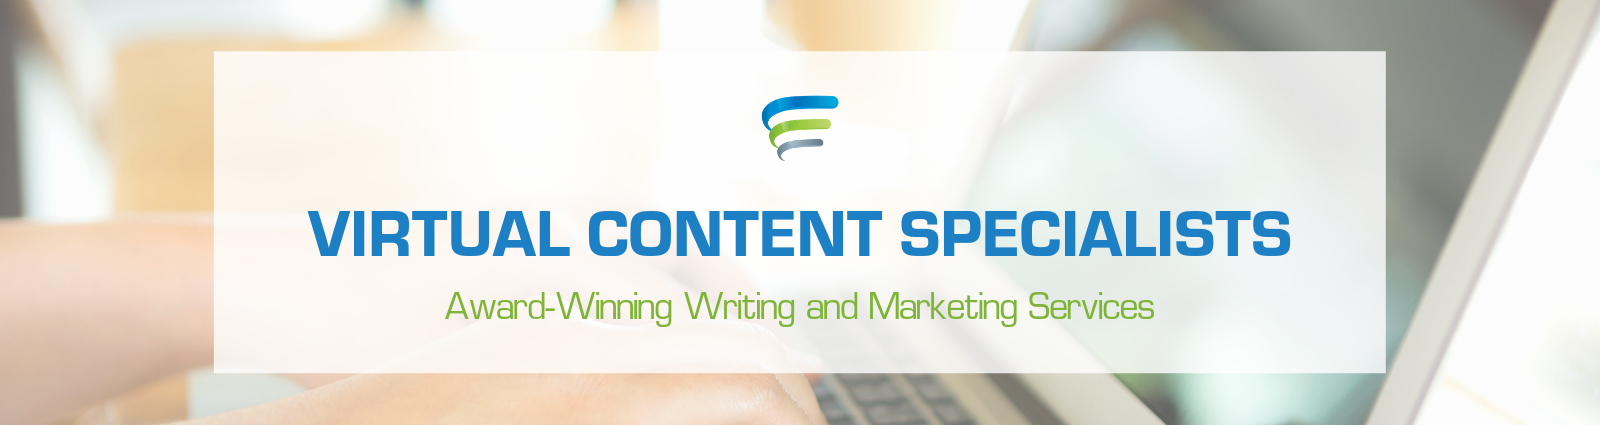 Virtual Content Specialists